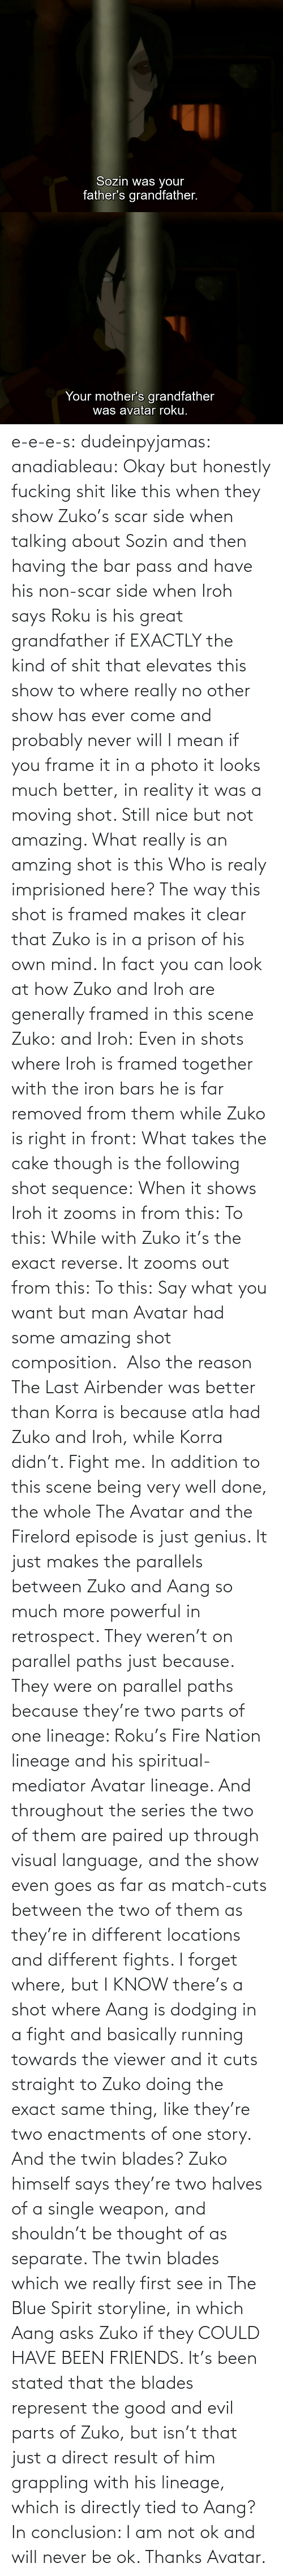 Basically: e-e-e-s: dudeinpyjamas:   anadiableau: Okay but honestly fucking shit like this when they show Zuko's scar side when talking about Sozin and then having the bar pass and have his non-scar side when Iroh says Roku is his great grandfather if EXACTLY the kind of shit that elevates this show to where really no other show has ever come and probably never will I mean if you frame it in a photo it looks much better, in reality it was a moving shot. Still nice but not amazing. What really is an amzing shot is this Who is realy imprisioned here? The way this shot is framed makes it clear that Zuko is in a prison of his own mind. In fact you can look at how Zuko and Iroh are generally framed in this scene Zuko: and Iroh: Even in shots where Iroh is framed together with the iron bars he is far removed from them while Zuko is right in front:  What takes the cake though is the following shot sequence: When it shows Iroh it zooms in from this: To this: While with Zuko it's the exact reverse. It zooms out from this: To this: Say what you want but man Avatar had some amazing shot composition.   Also the reason The Last Airbender was better than Korra is because atla had Zuko and Iroh, while Korra didn't. Fight me.    In addition to this scene being very well done, the whole The Avatar and the Firelord episode is just genius.  It just makes the parallels between Zuko and Aang so much more powerful in retrospect.  They weren't on parallel paths just because.  They were on parallel paths because they're two parts of one lineage: Roku's Fire Nation lineage and his spiritual-mediator Avatar lineage.  And throughout the series the two of them are paired up through visual language, and the show even goes as far as match-cuts between the two of them as they're in different locations and different fights.  I forget where, but I KNOW there's a shot where Aang is dodging in a fight and basically running towards the viewer and it cuts straight to Zuko doing the exact same thing, like they're two enactments of one story.   And the twin blades?  Zuko himself says they're two halves of a single weapon, and shouldn't be thought of as separate.  The twin blades which we really first see in The Blue Spirit storyline, in which Aang asks Zuko if they COULD HAVE BEEN FRIENDS.  It's been stated that the blades represent the good and evil parts of Zuko, but isn't that just a direct result of him grappling with his lineage, which is directly tied to Aang? In conclusion: I am not ok and will never be ok.  Thanks Avatar.